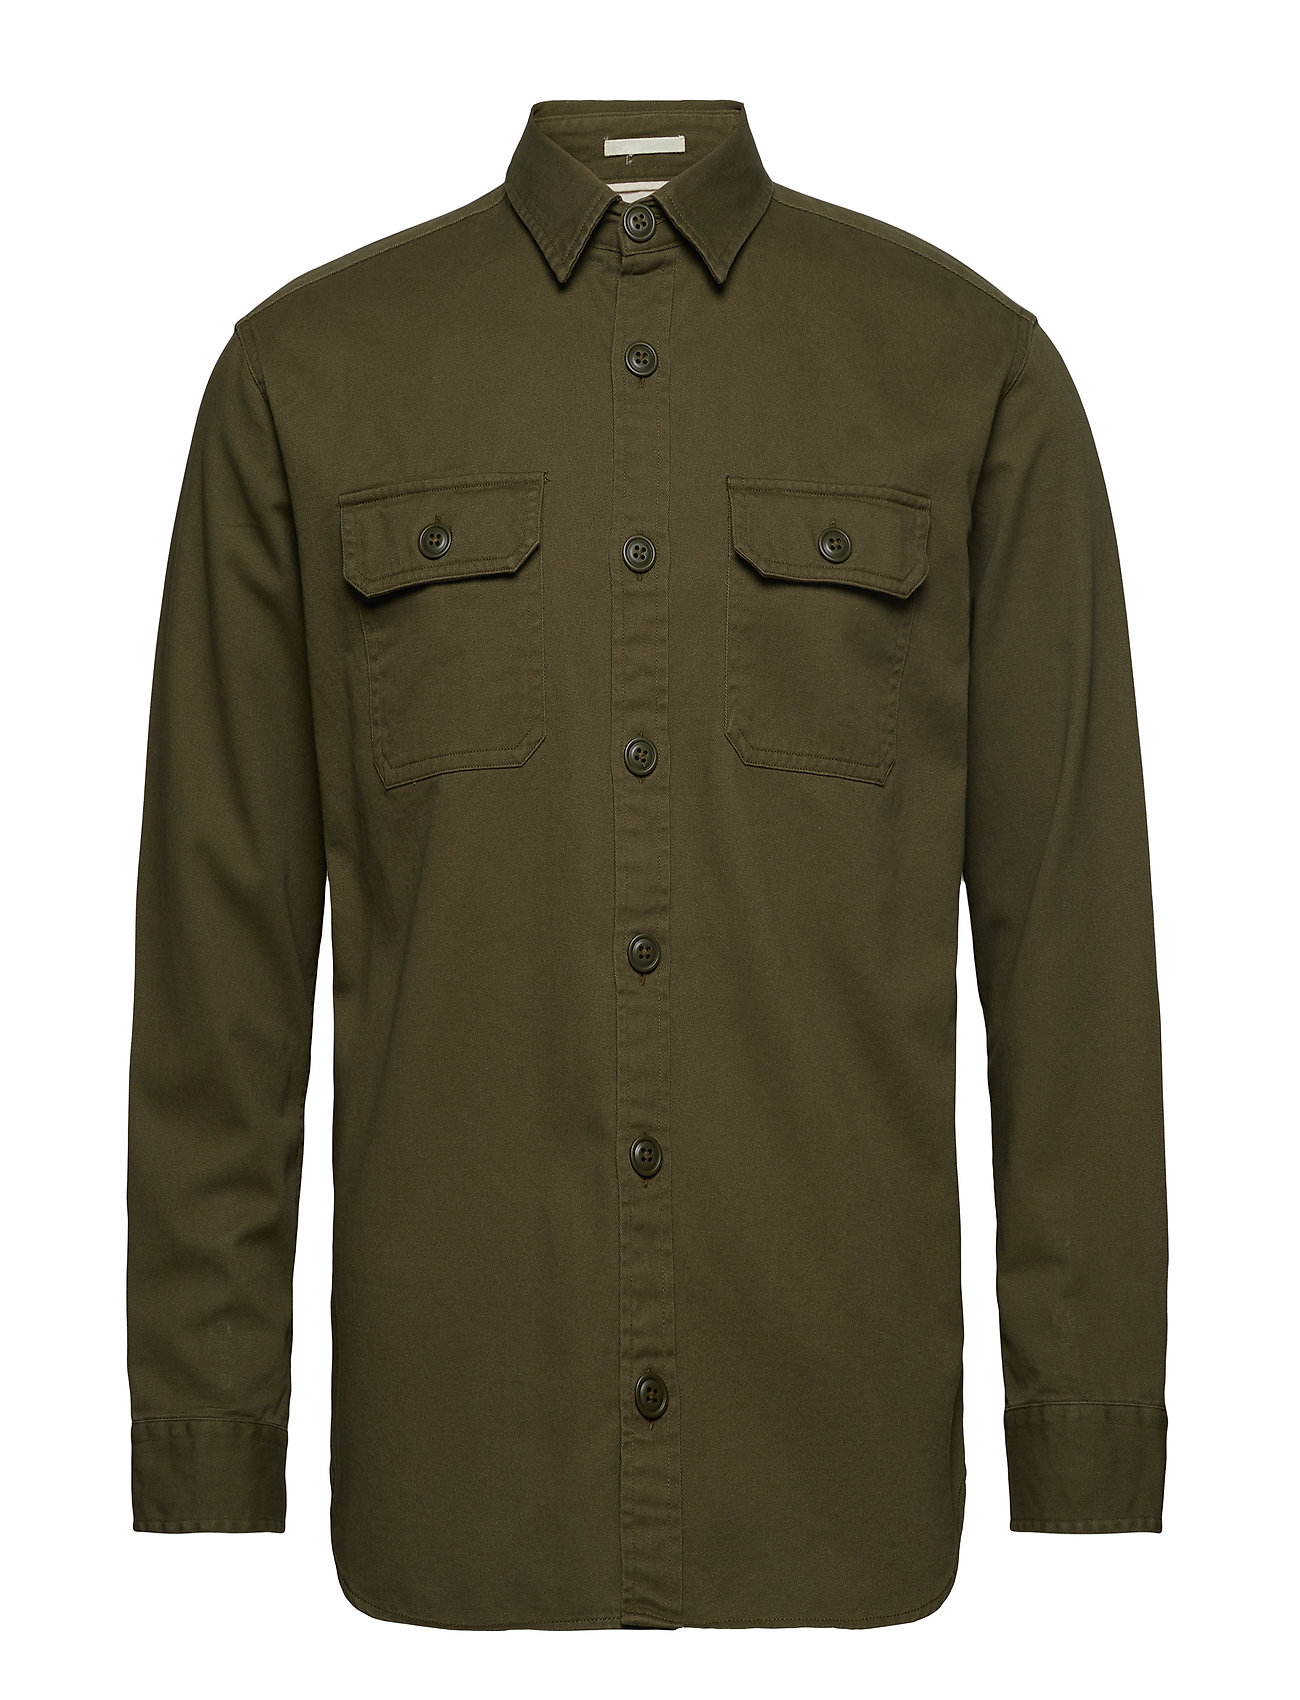 Selected Homme SLHLOOSEWILL SHIRT LS W - SEA TURTLE